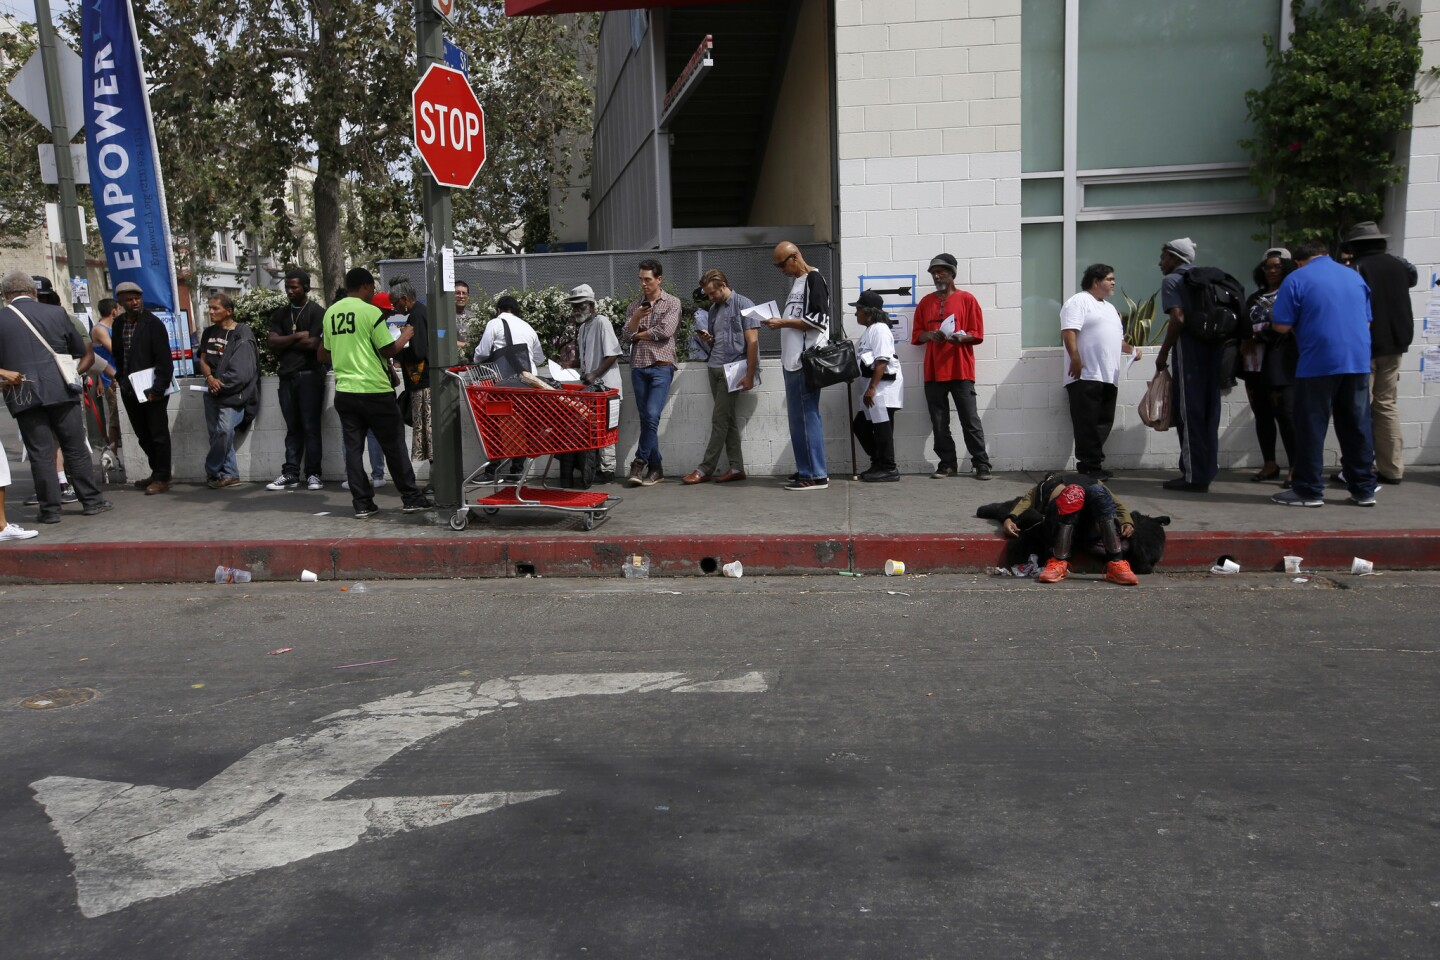 People line up to vote on the corner of 5th and San Julian streets in the skid row neighborhood of Los Angeles.